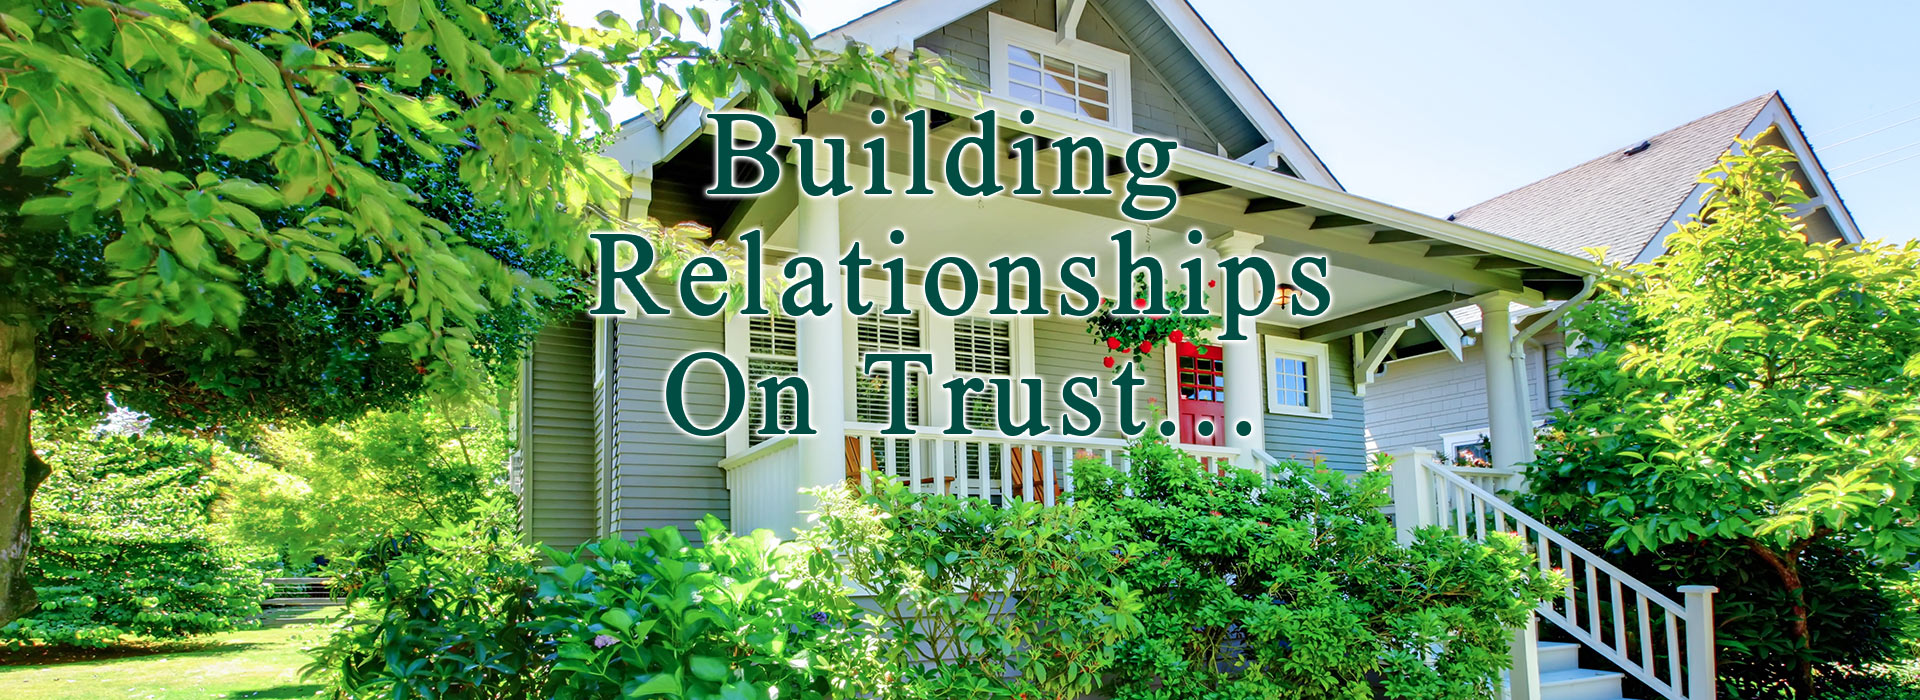 home-banner-house-porch-pleasant-view-realty-plymouth-wi-build-relationships-green